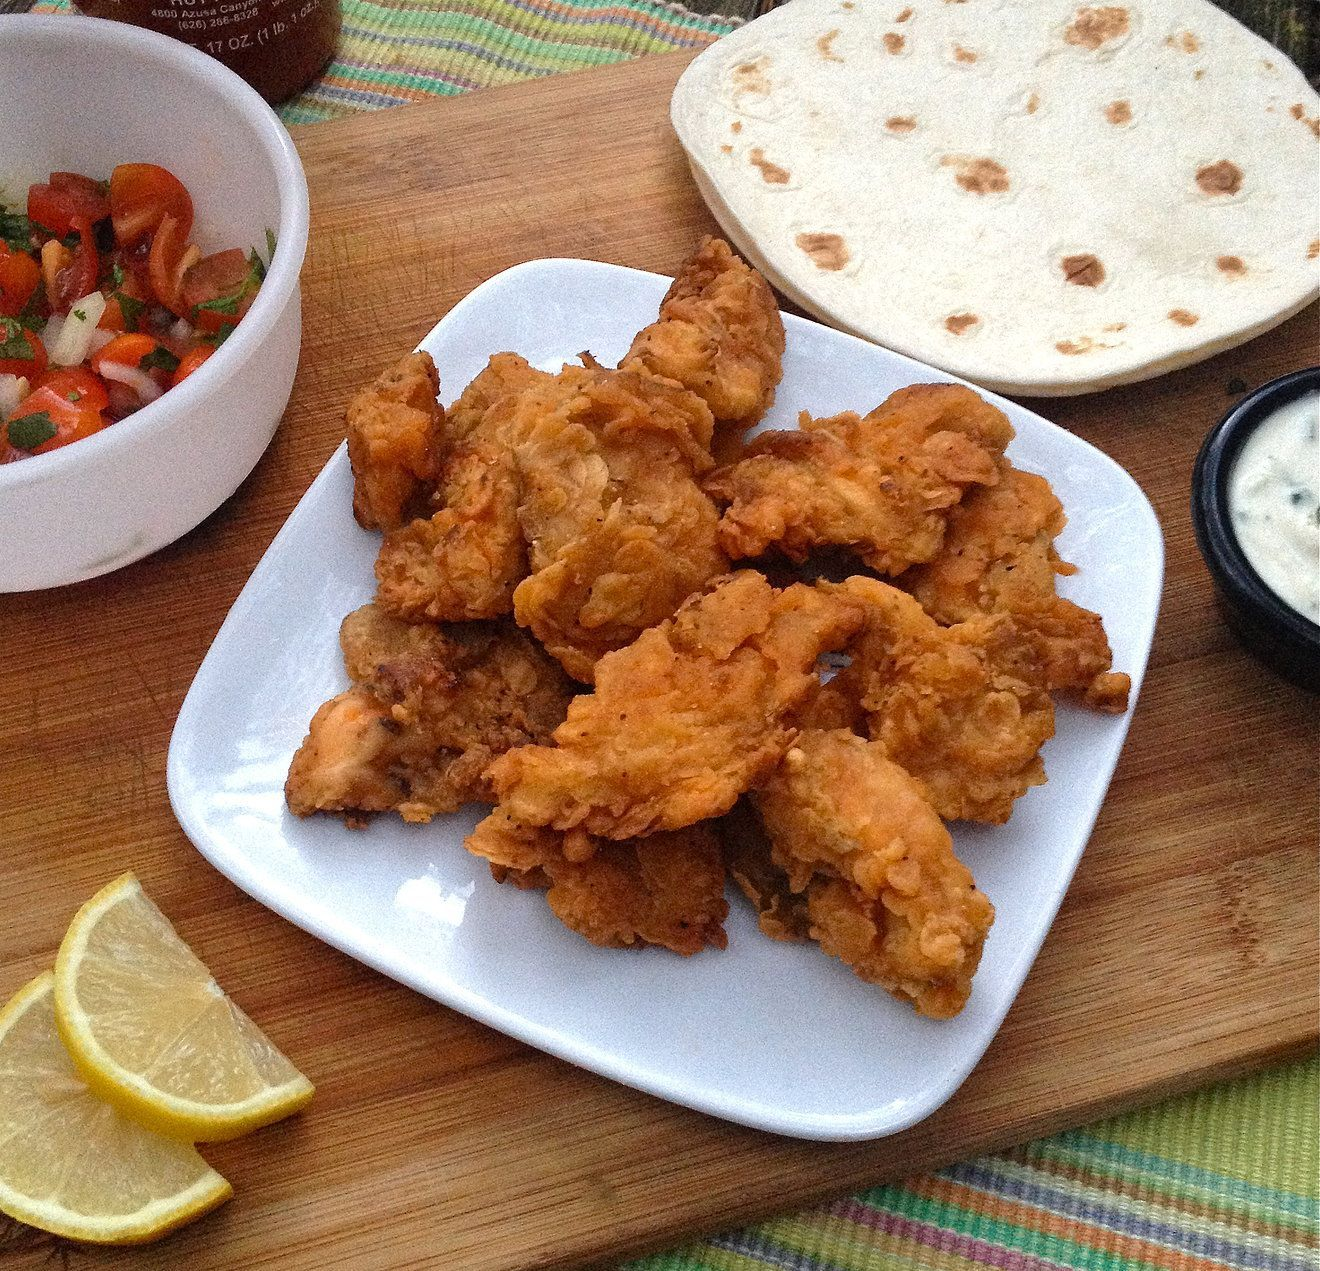 I Love Making Fried Oyster Mushrooms They Have Such A Hearty And Filling Texture I Almost Always Use Mushroom Recipes Vegan Vegan Recipes Easy Fried Oysters